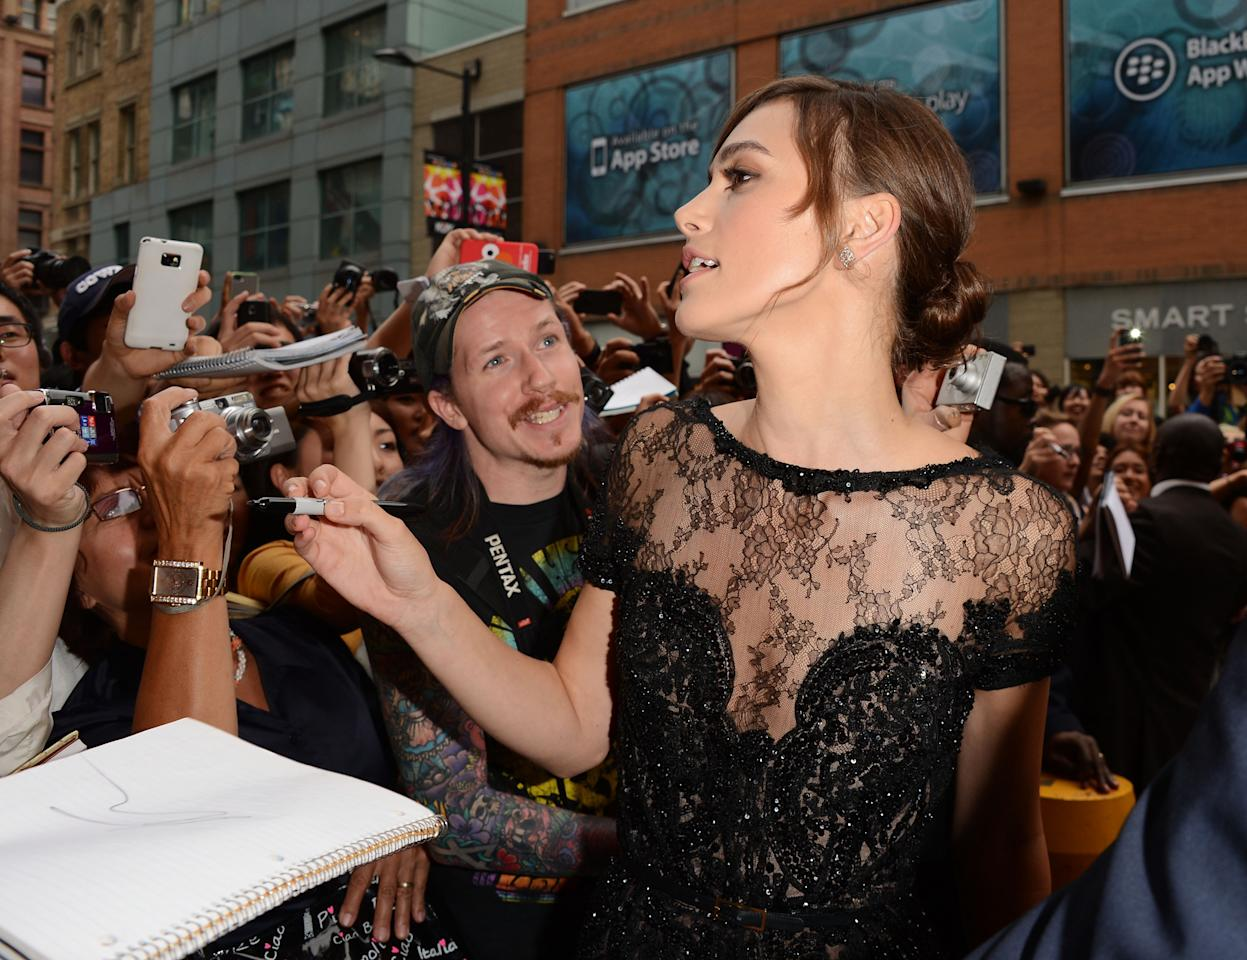 Only Kiera Knightley can look this glamorous in a candid shot - but rather than her gorgeous profile, we like this photo mostly for the guy who's completely enamoured with her. Well, rightfully so.